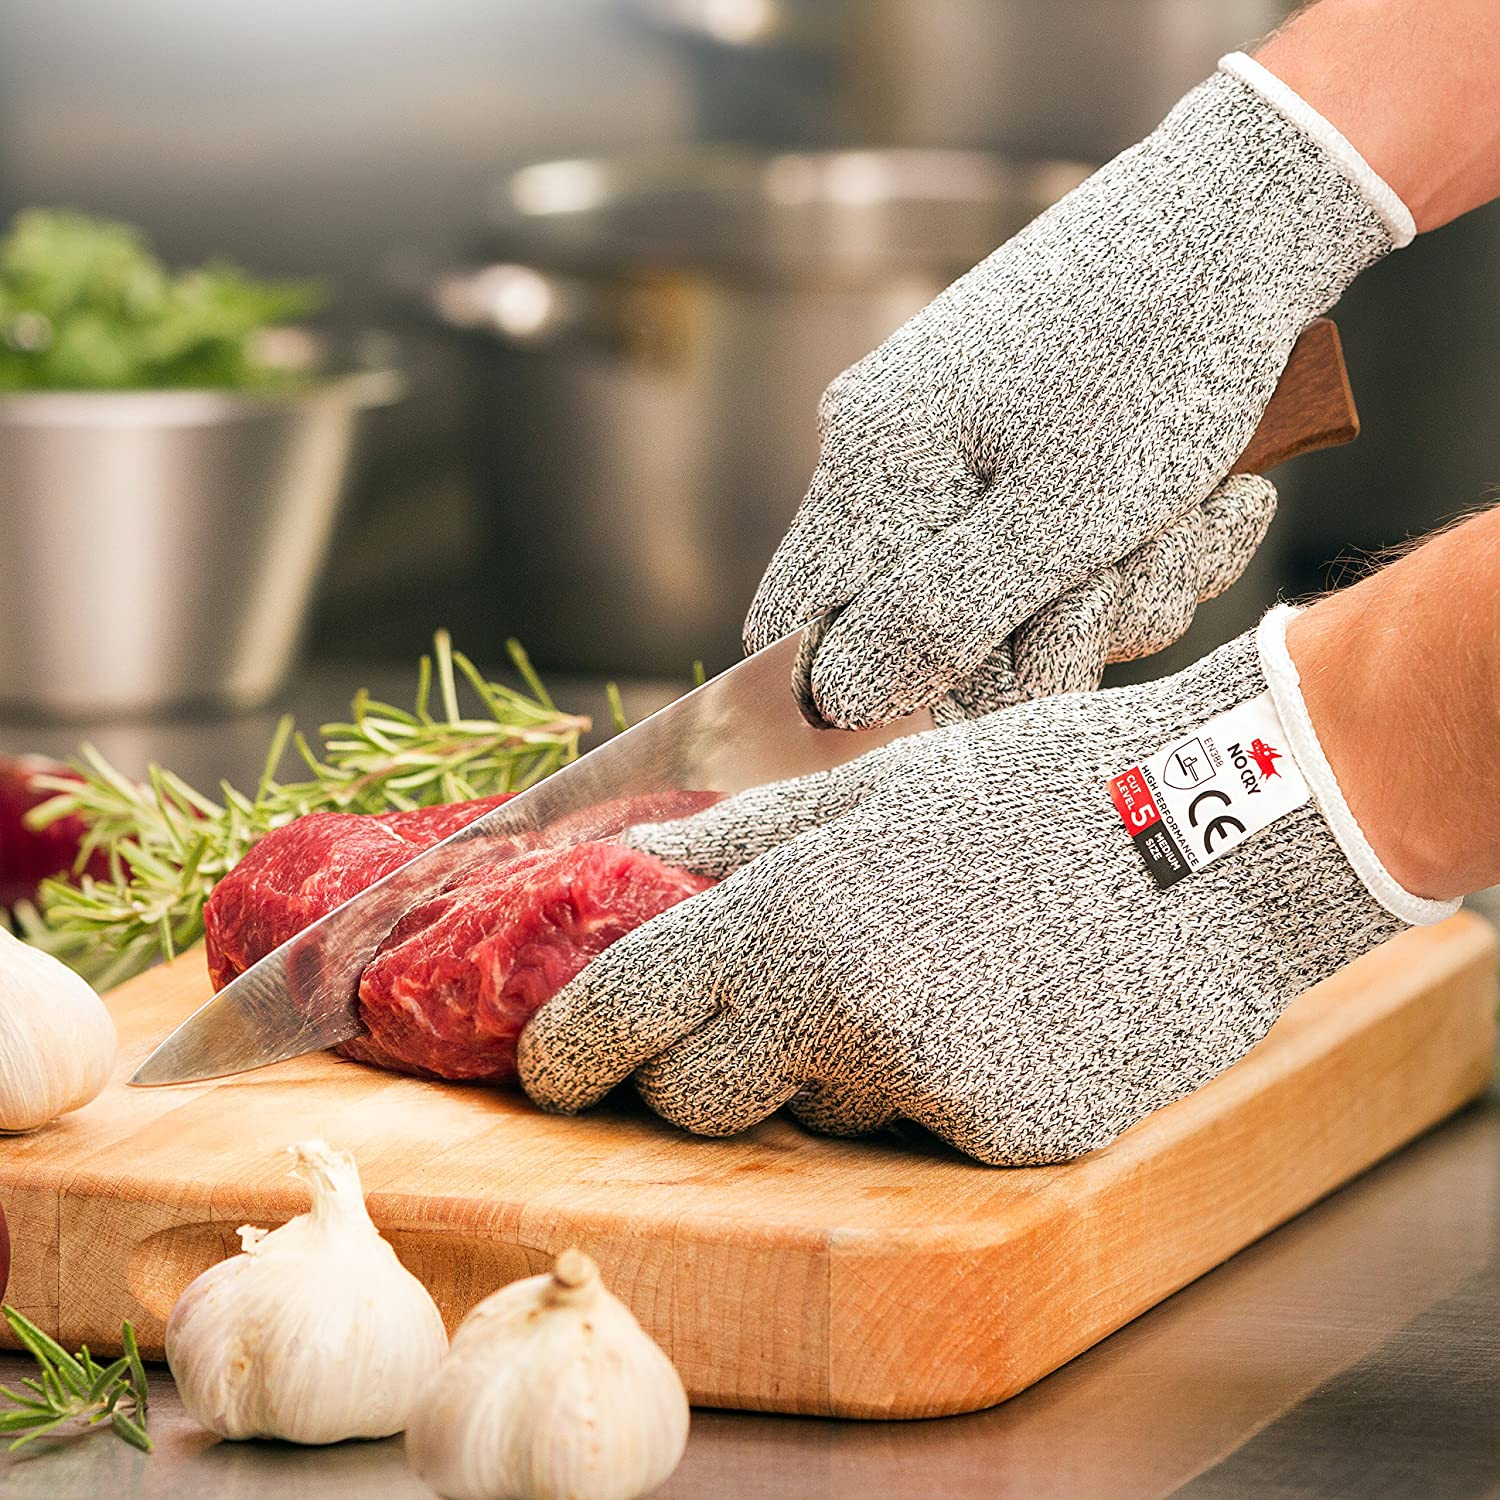 amazon com nocry cut resistant gloves high performance level 5 amazon com nocry cut resistant gloves high performance level 5 protection food grade size extra large ebook included kitchen dining